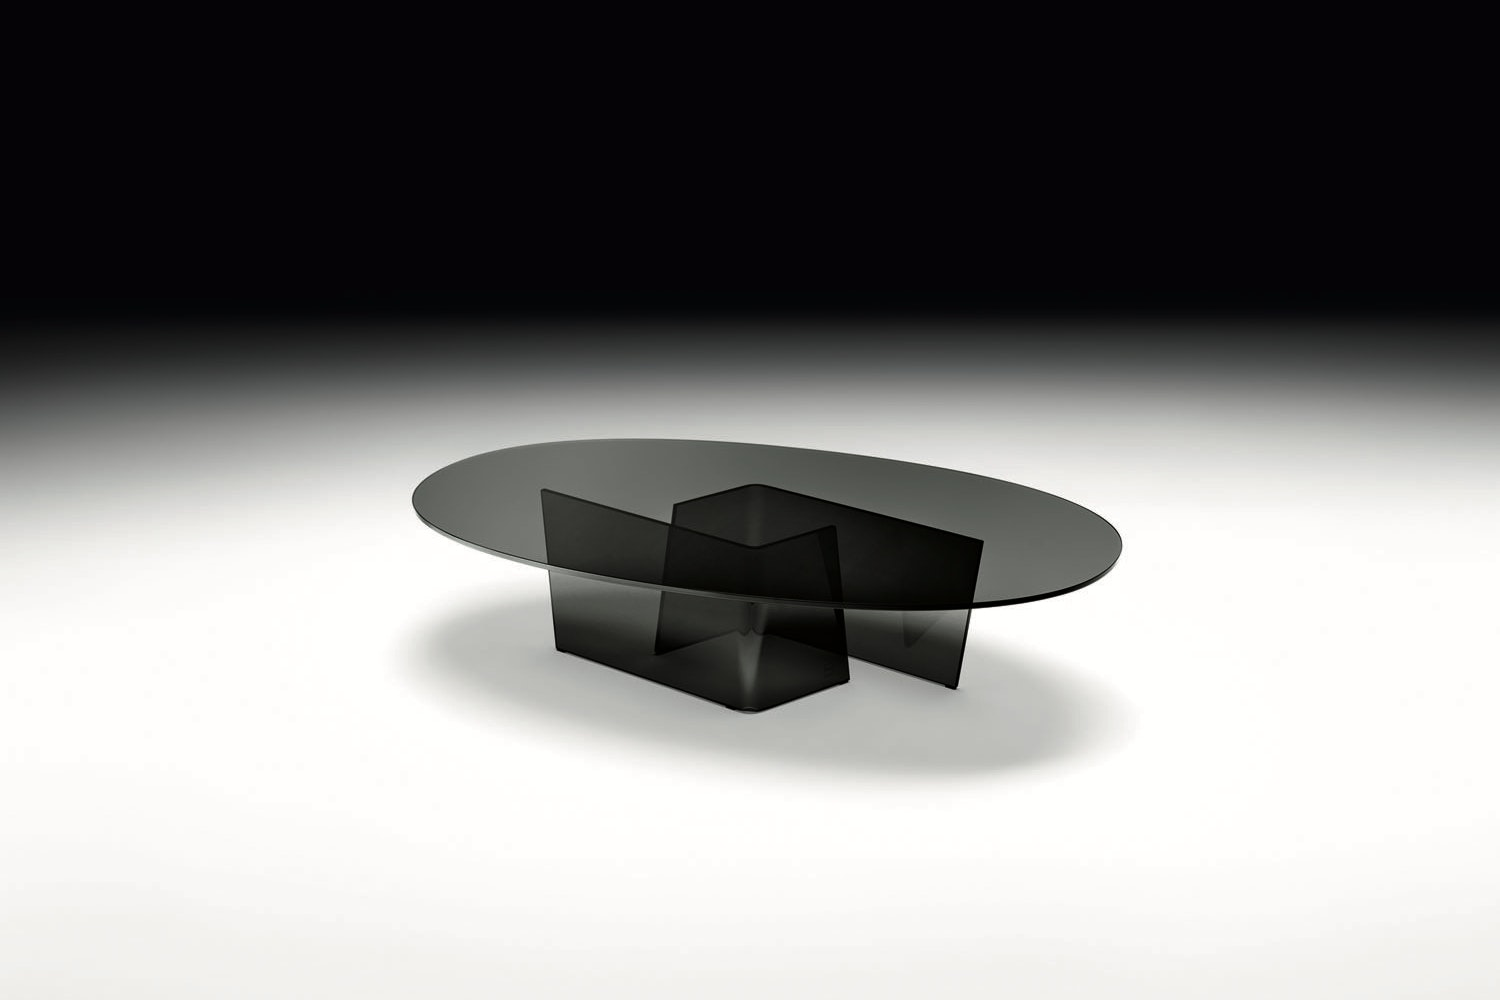 Accordo Tavolino Coffee Table by Ilaria Marelli for Fiam Italia